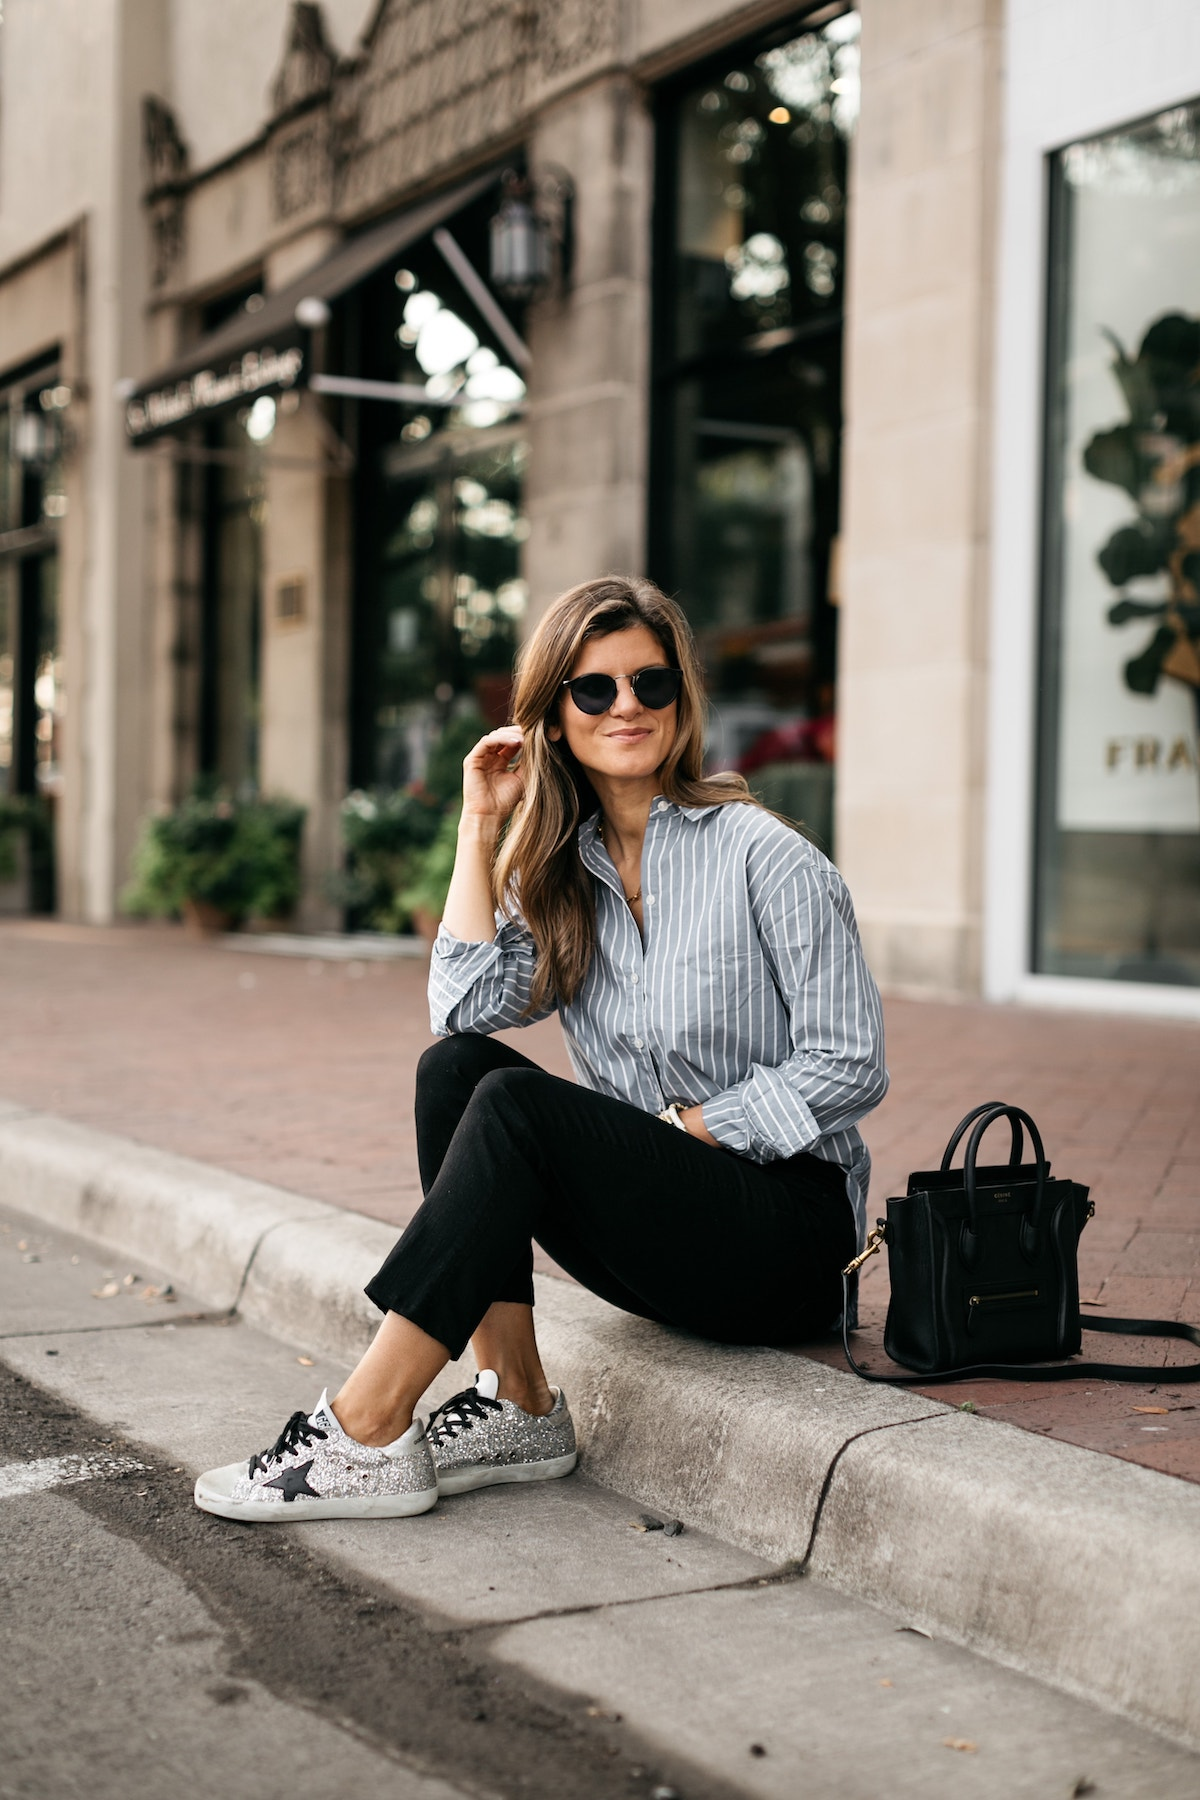 Brighton Butler wearing Abercombie striped shirt, black jeans and golden goose sneakers silver glitter with black star and black laces